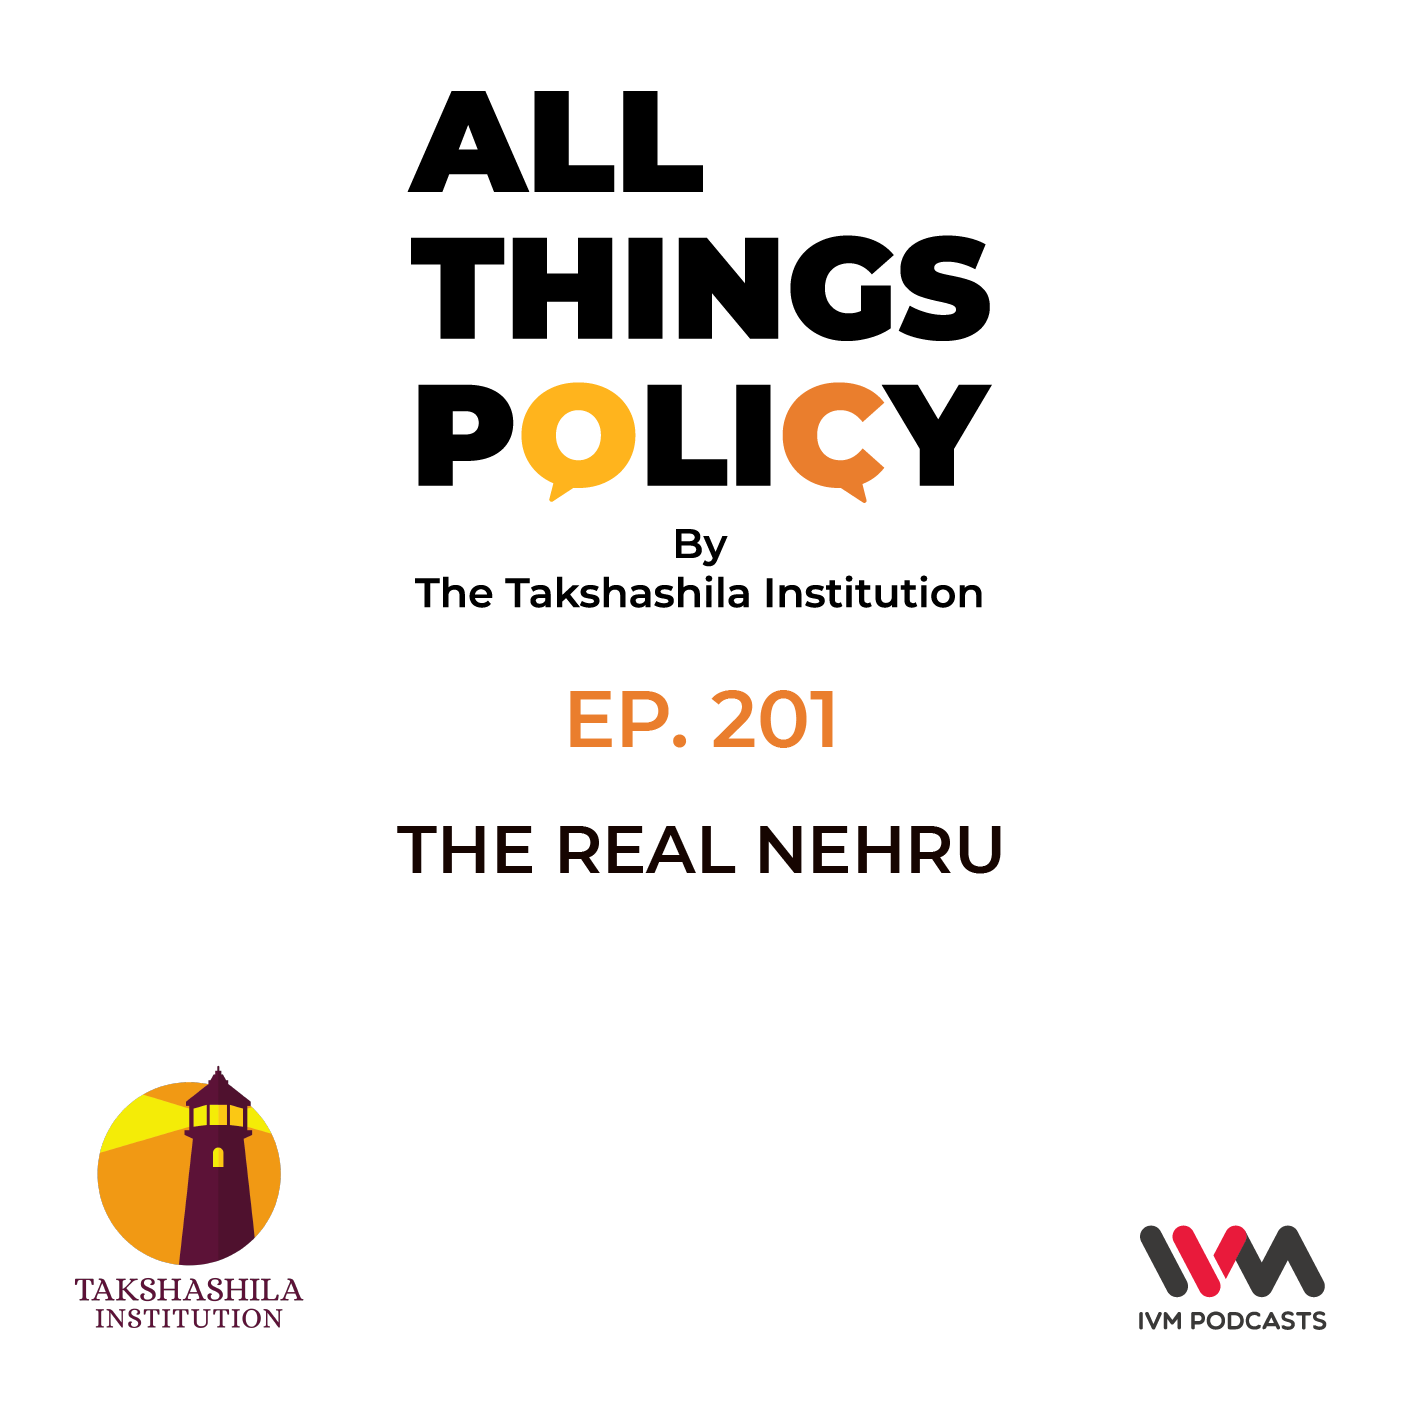 Ep. 201: The Real Nehru